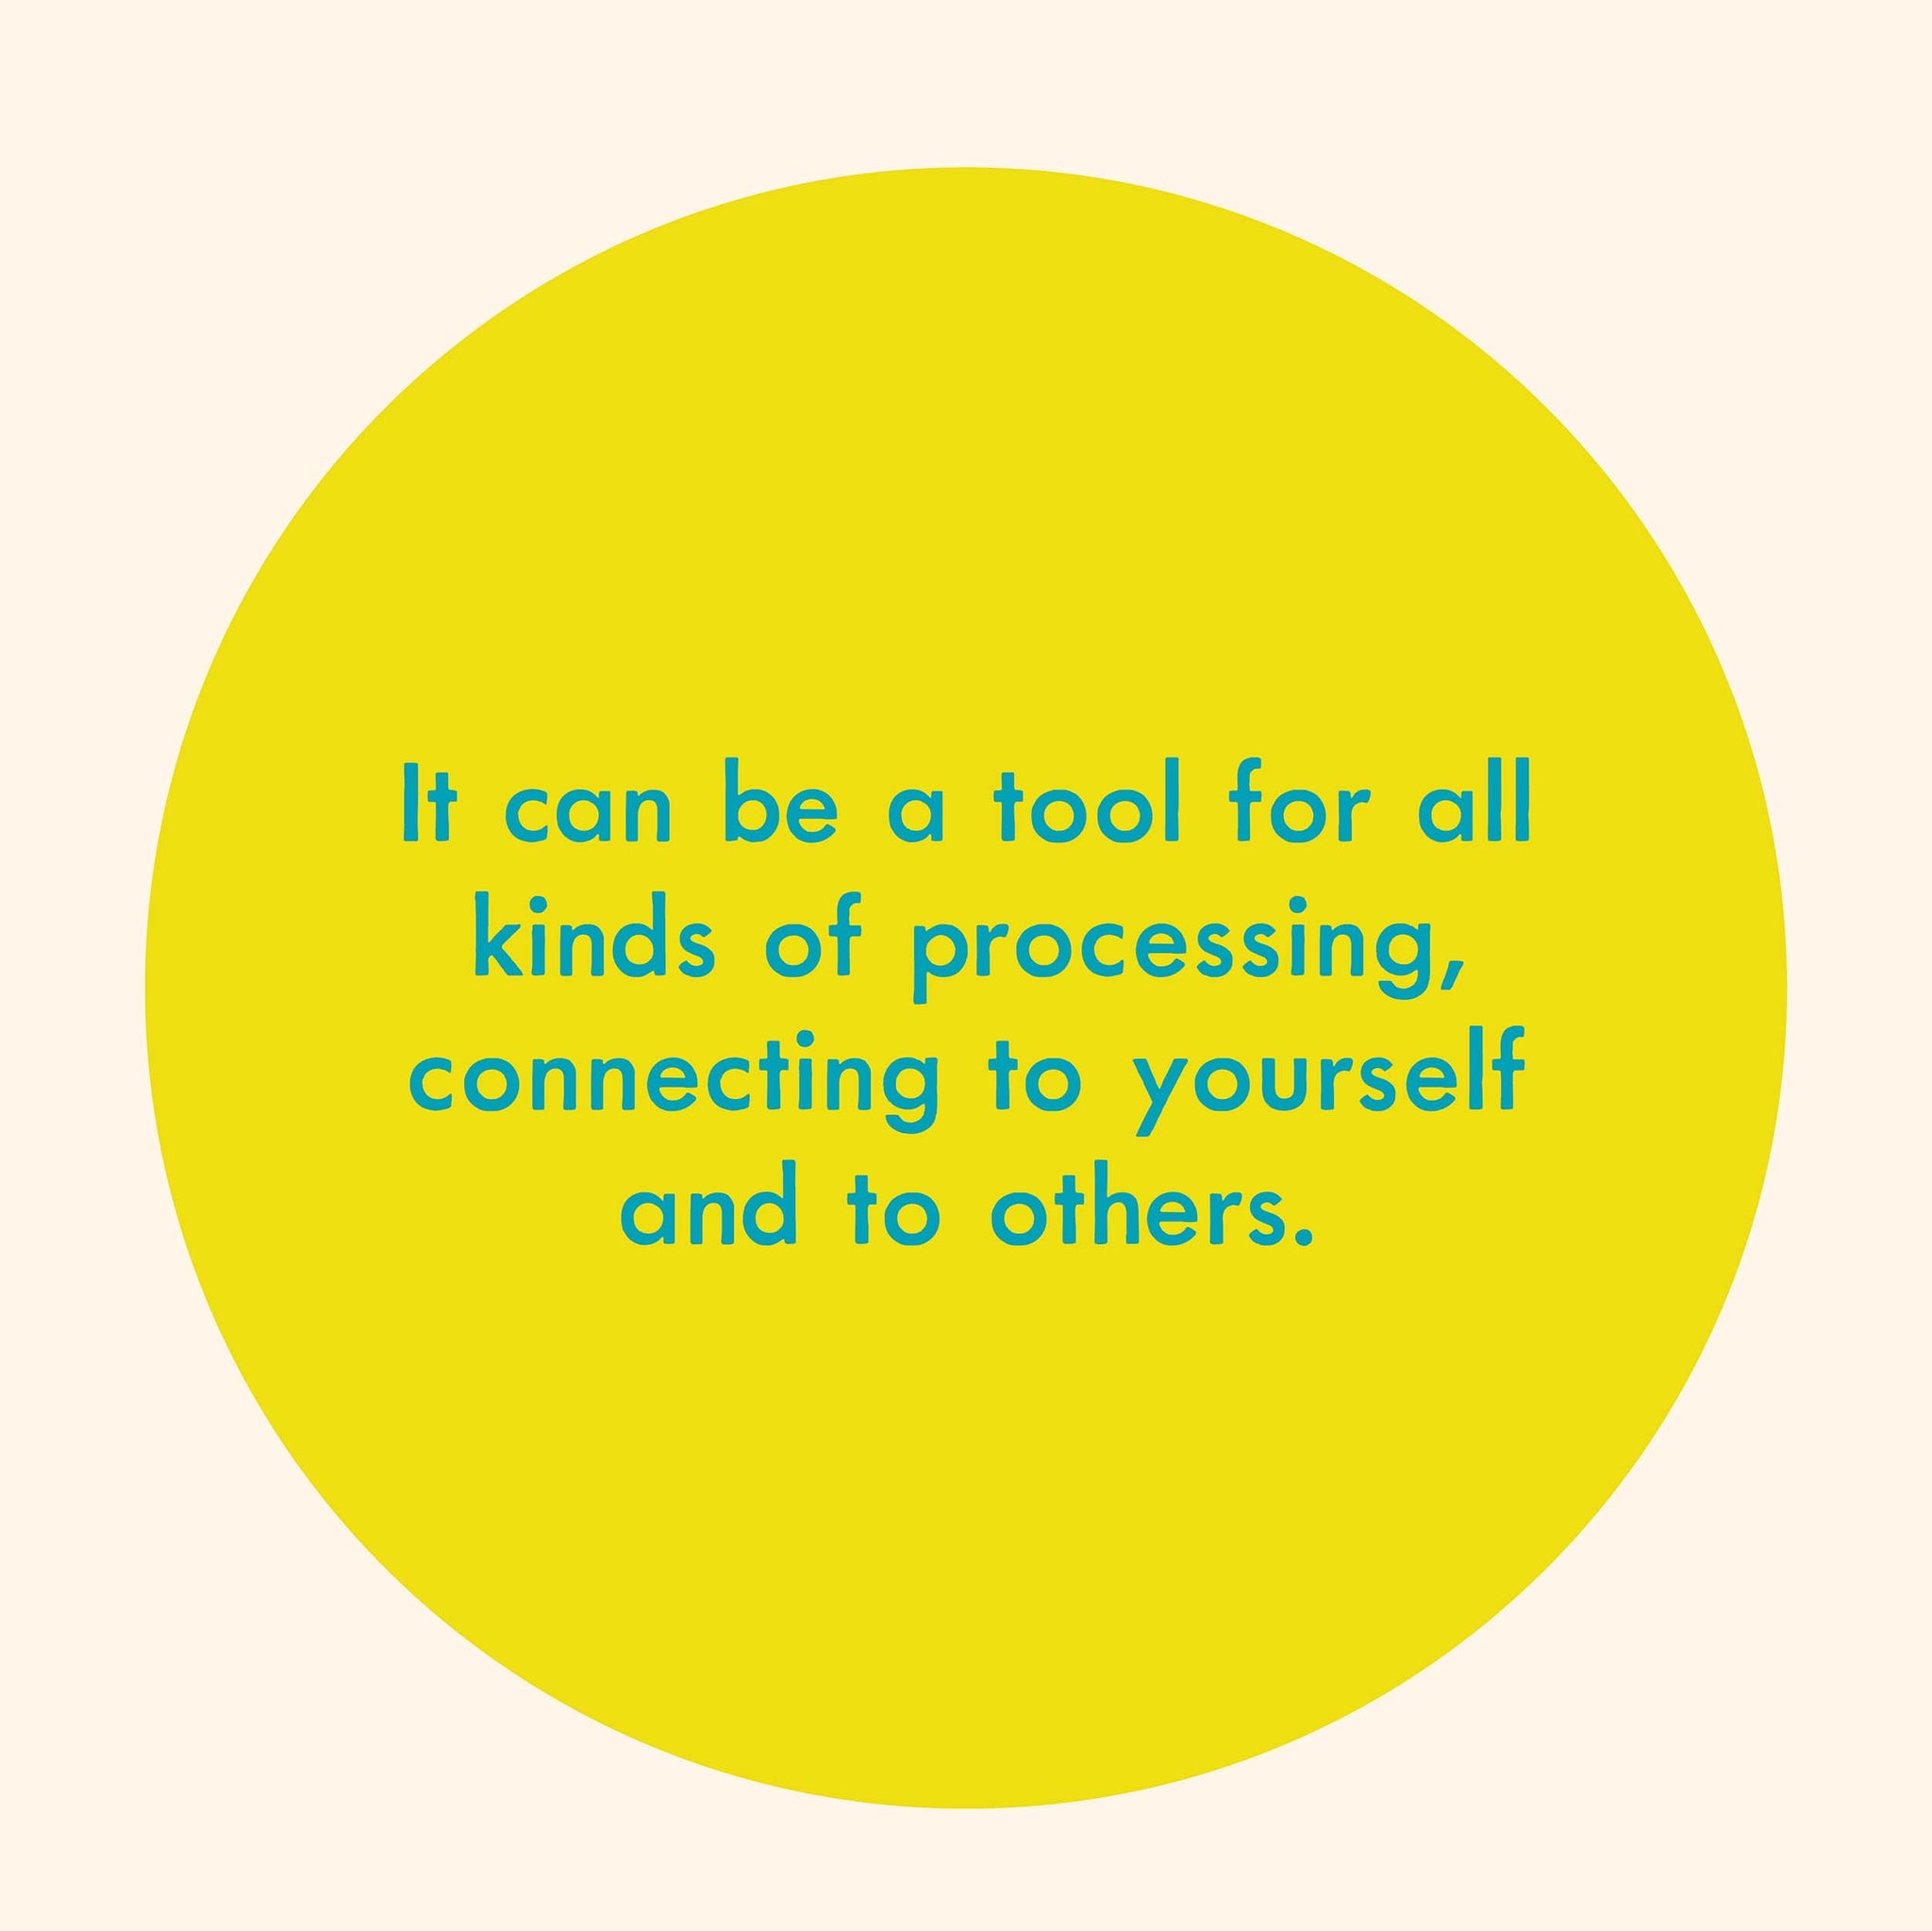 It can be a tool for all kinds of processing, connecting to yourself and to others.